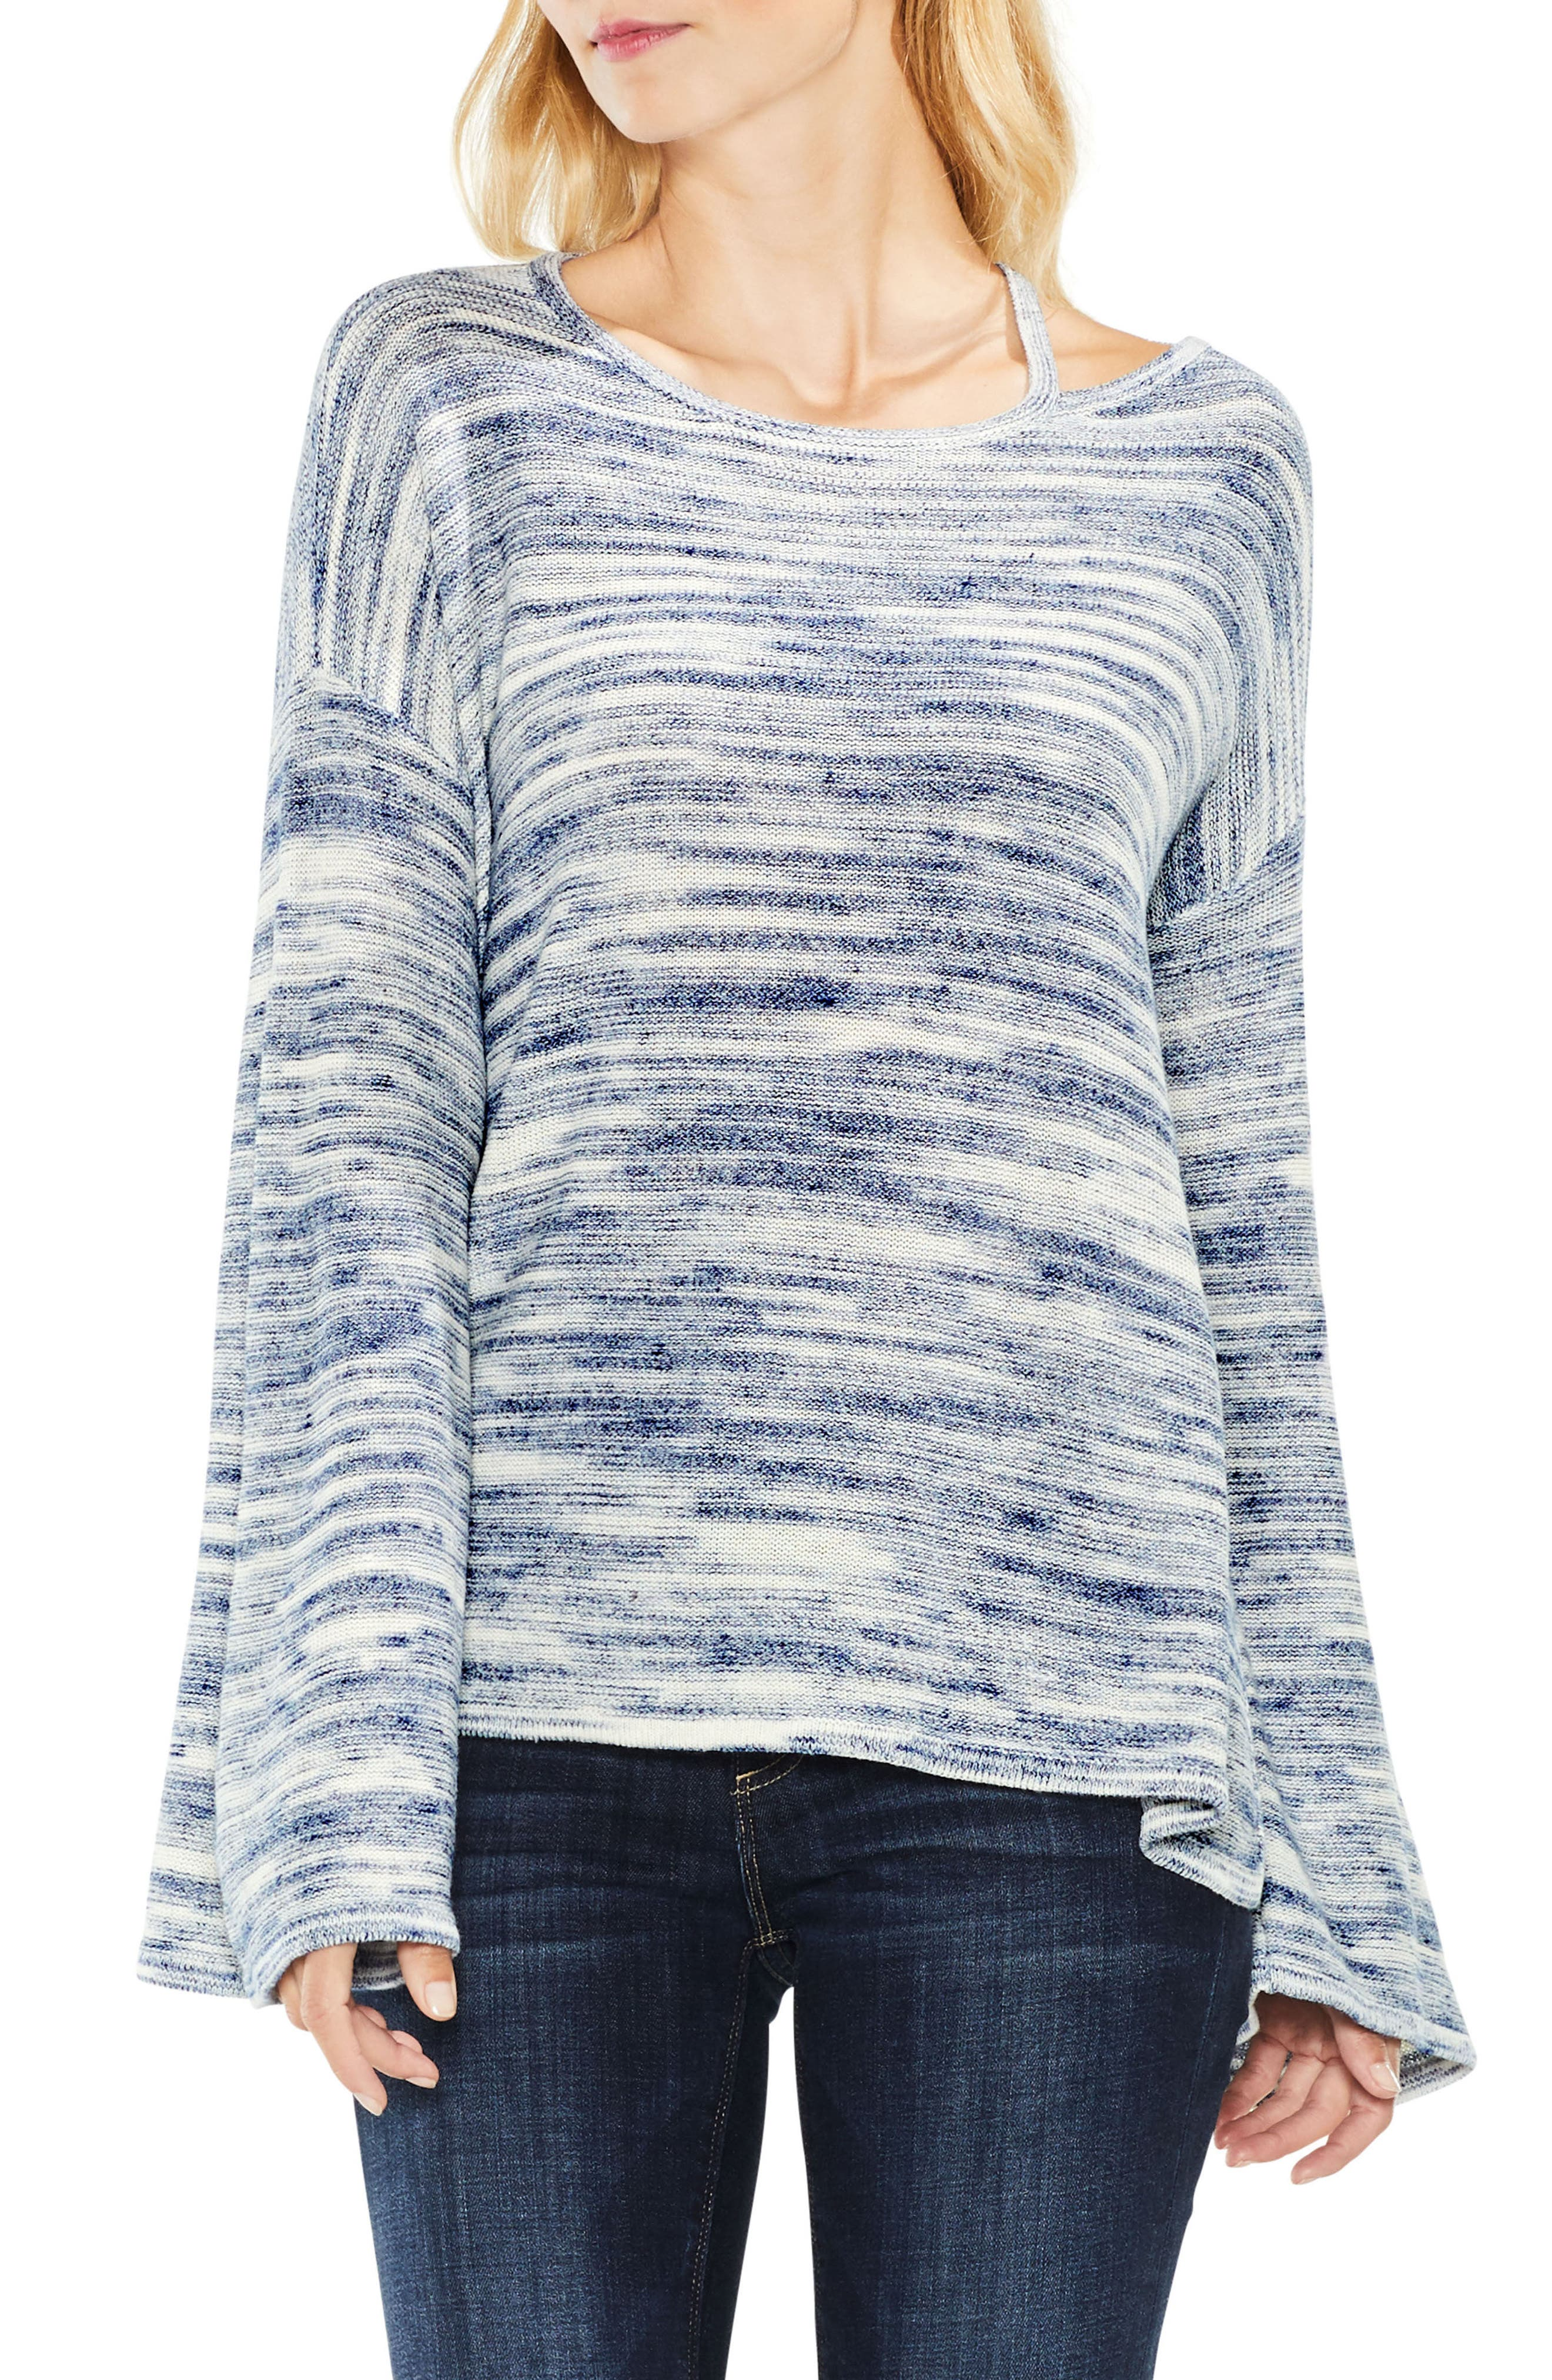 Alternate Image 1 Selected - Two by Vince Camuto Drop Shoulder Space Dye Sweater